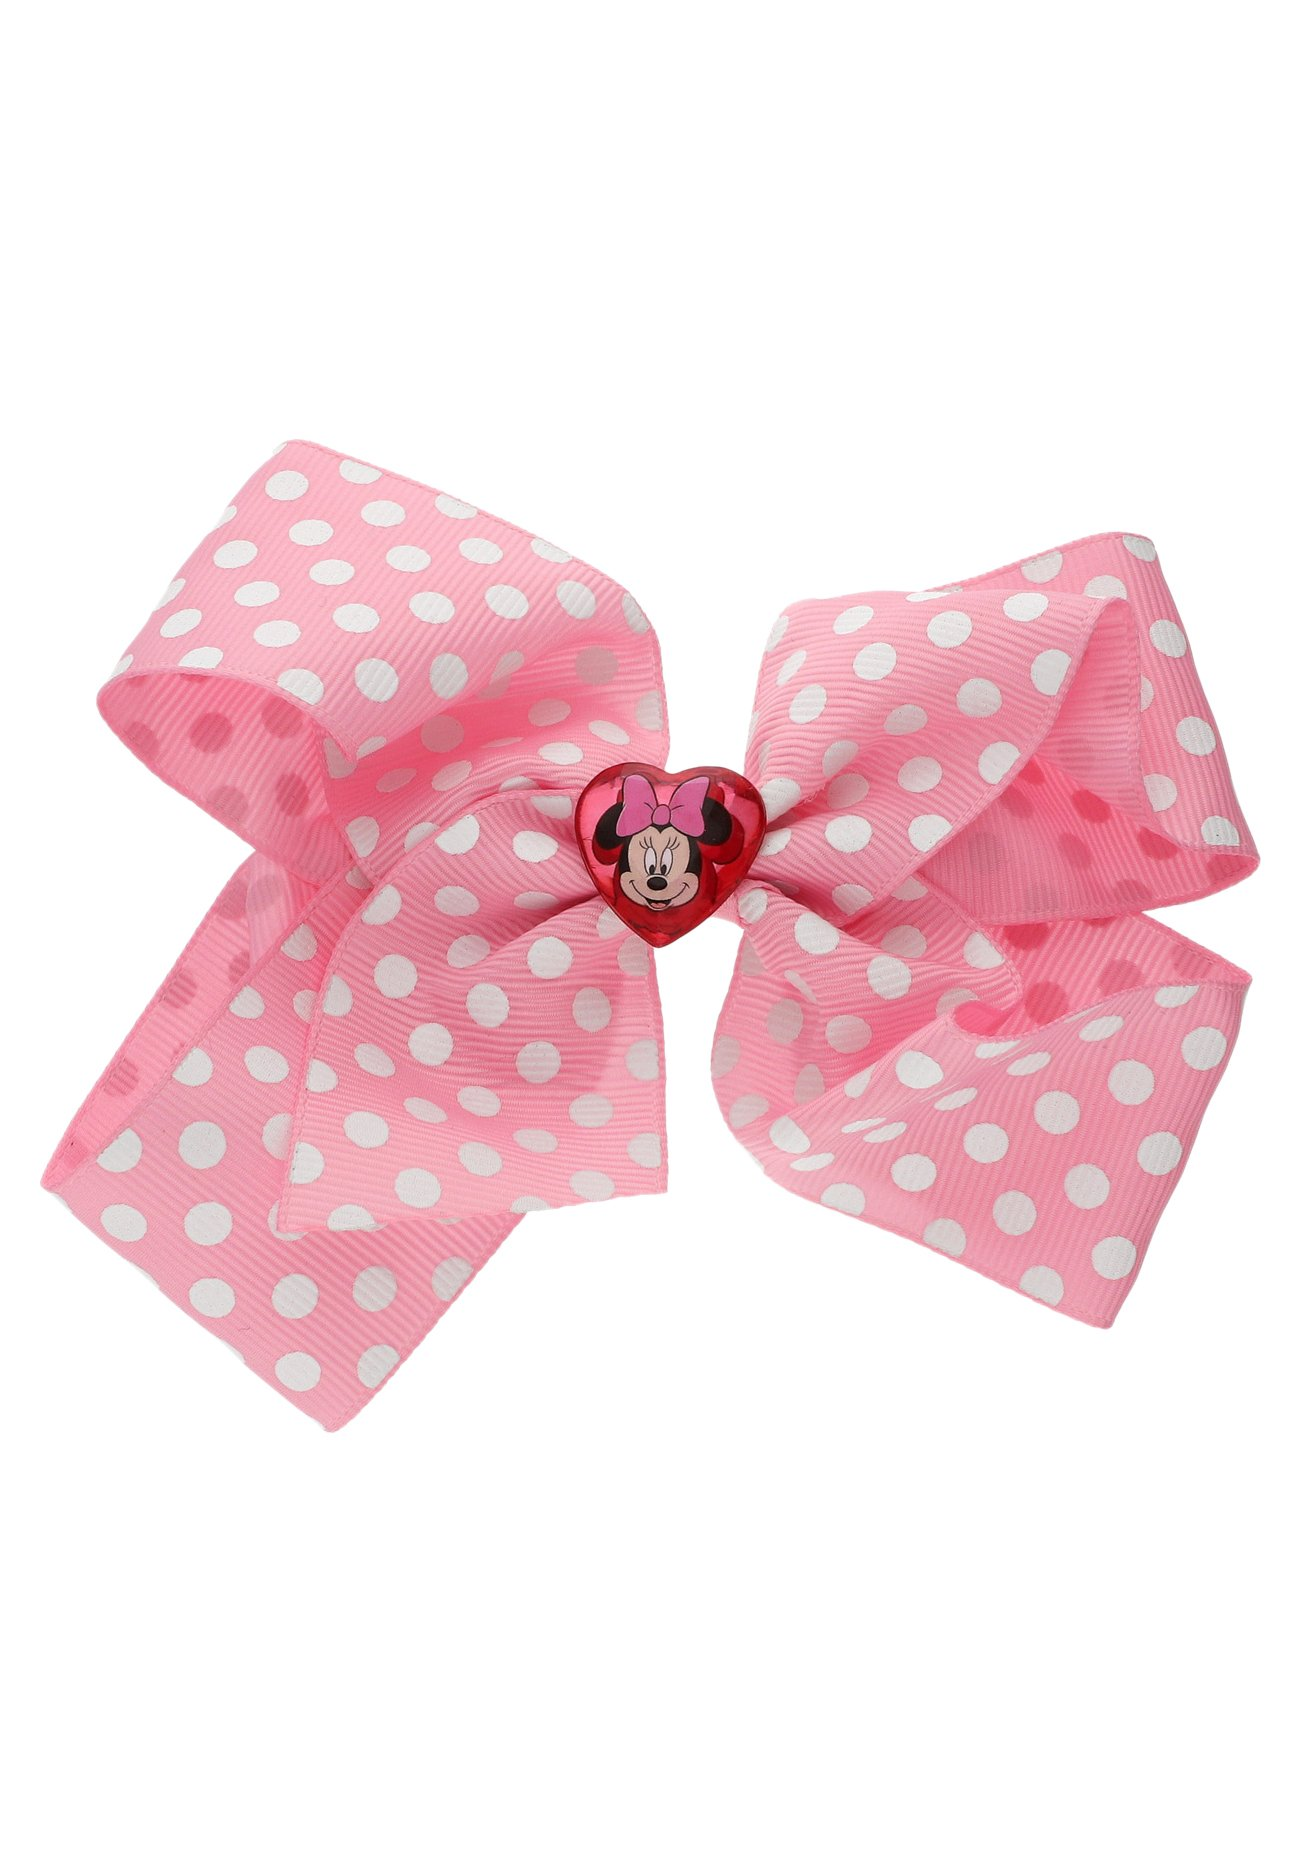 Kinder MICKEY MOUSE - Haar-Styling-Accessoires